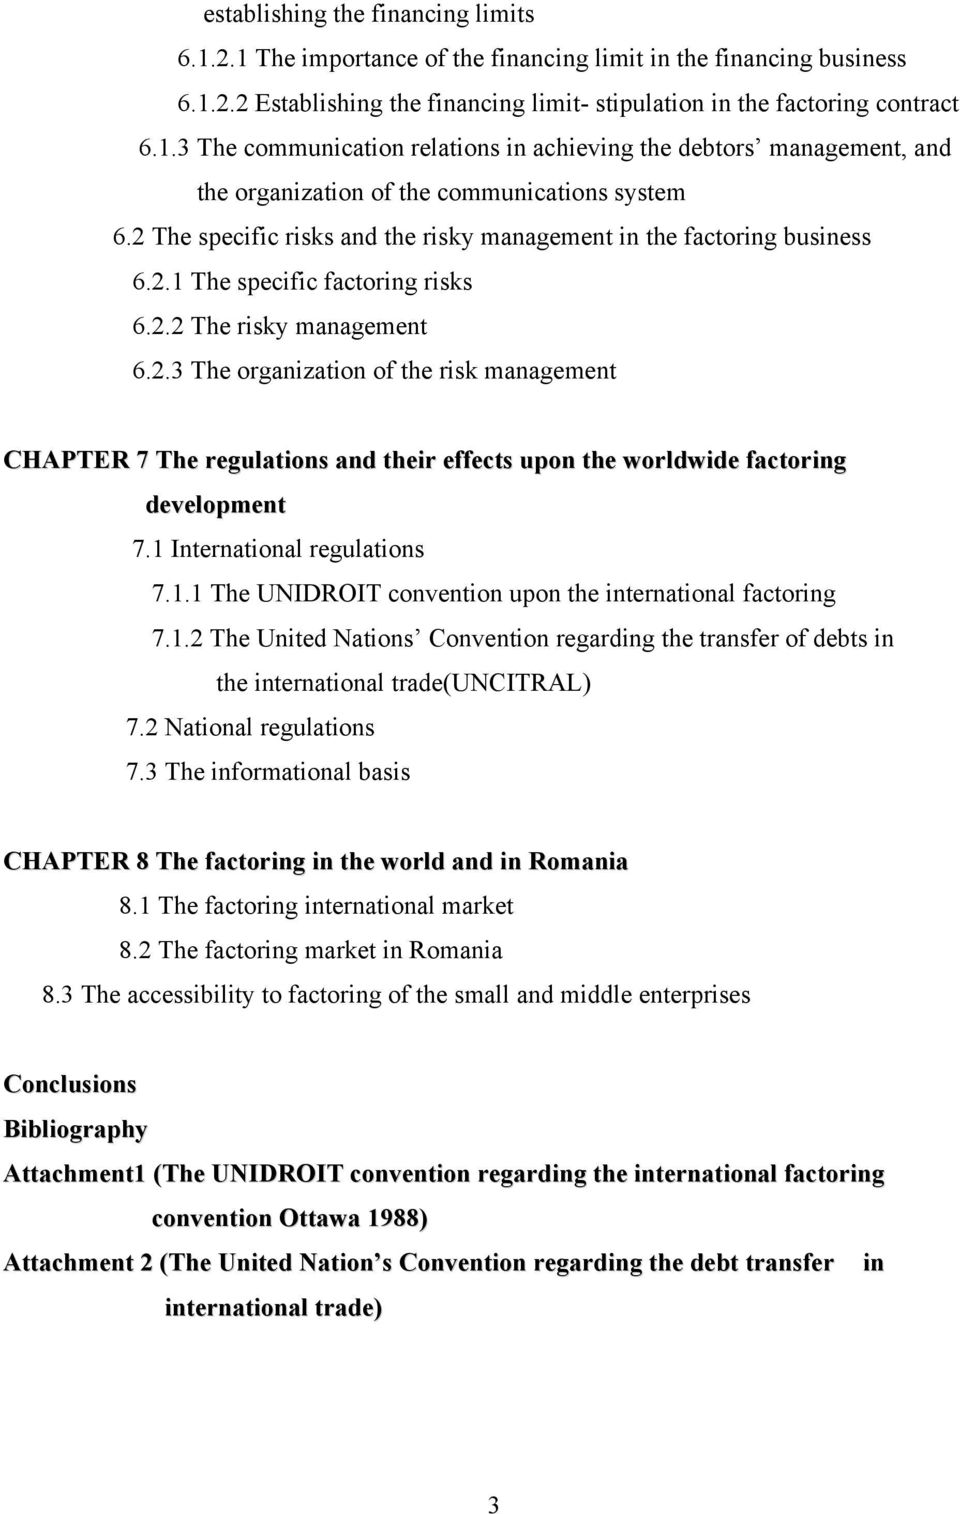 1 International regulations 7.1.1 The UNIDROIT convention upon the international factoring 7.1.2 The United Nations Convention regarding the transfer of debts in the international trade(uncitral) 7.